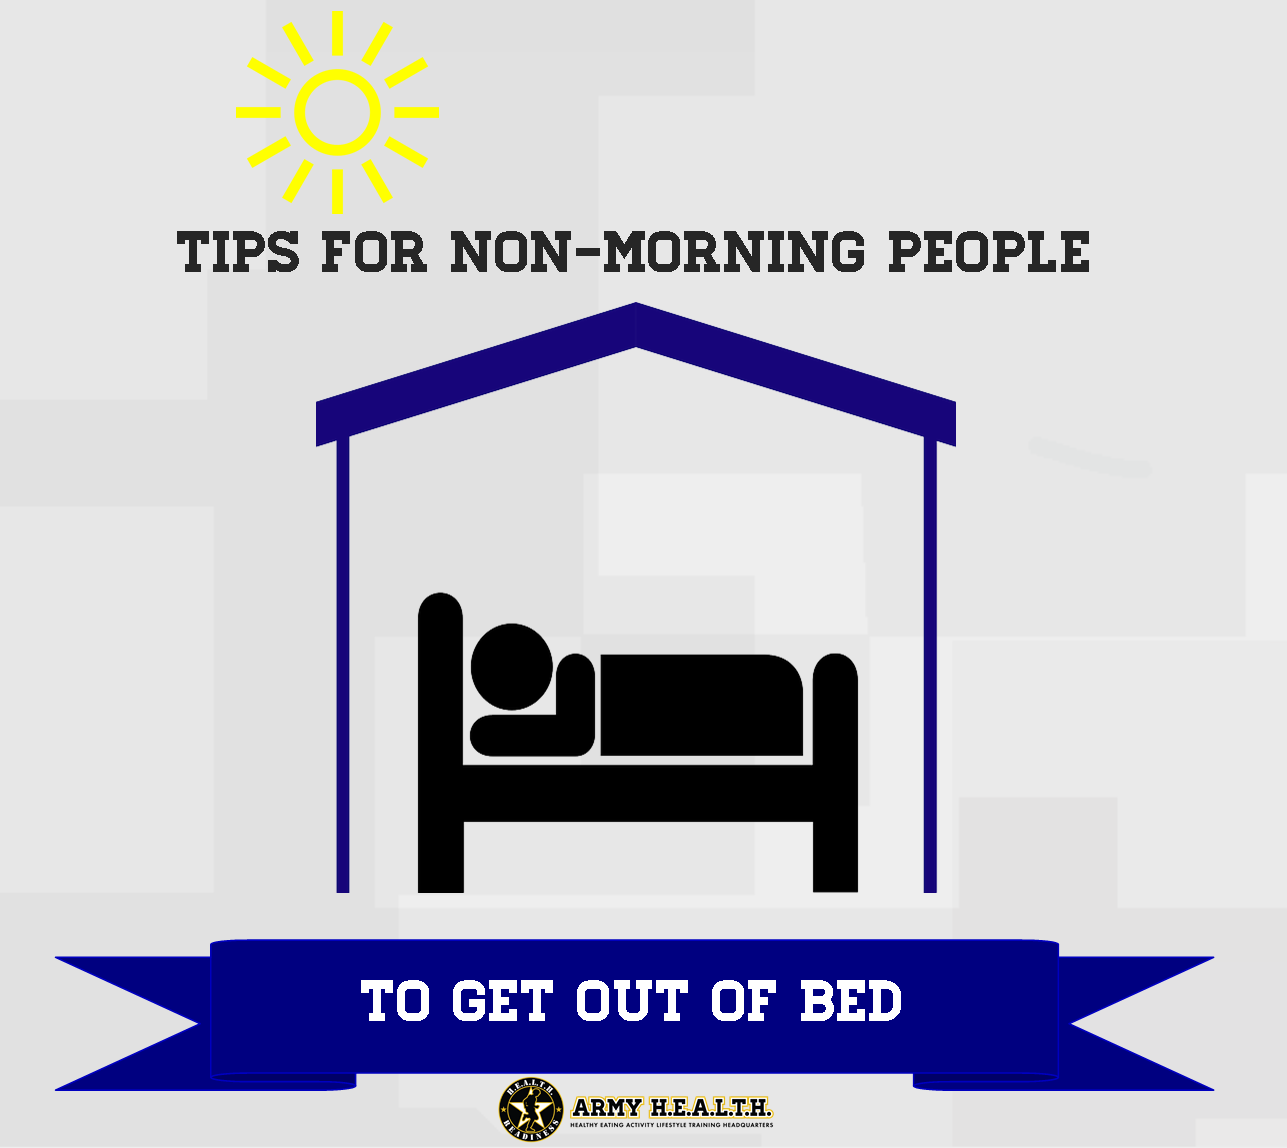 Tips to help non-morning people get out of bed